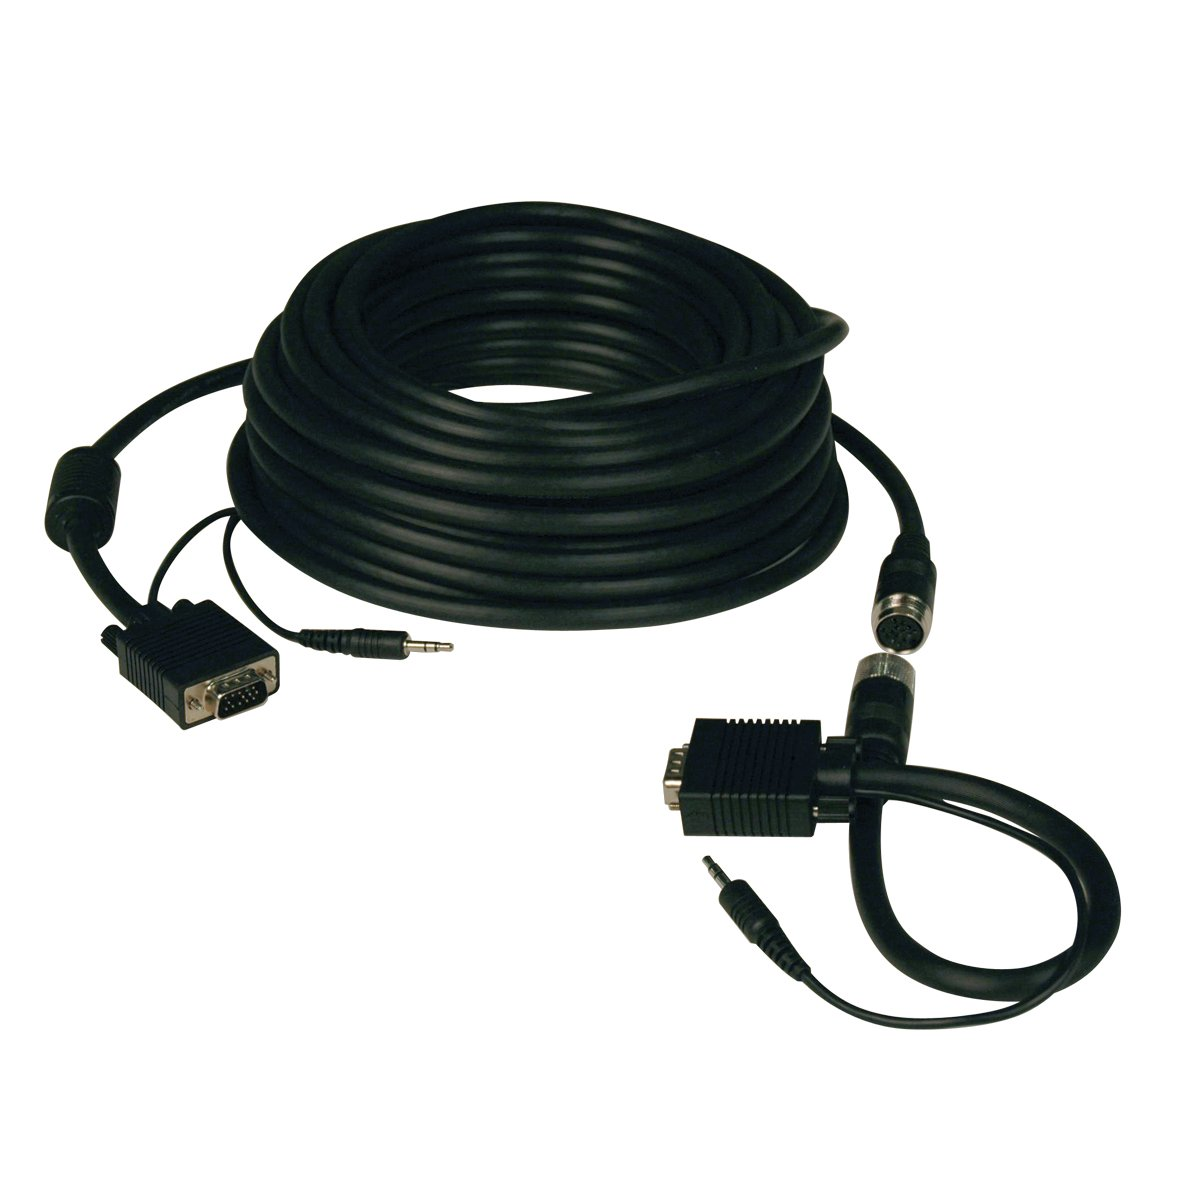 Tripp Lite High Resolution SVGA / VGA Monitor Easy Pull Cable with Audio and RGB coax (HD15 M/M) 100-ft.(P504-100-EZ) by Tripp Lite